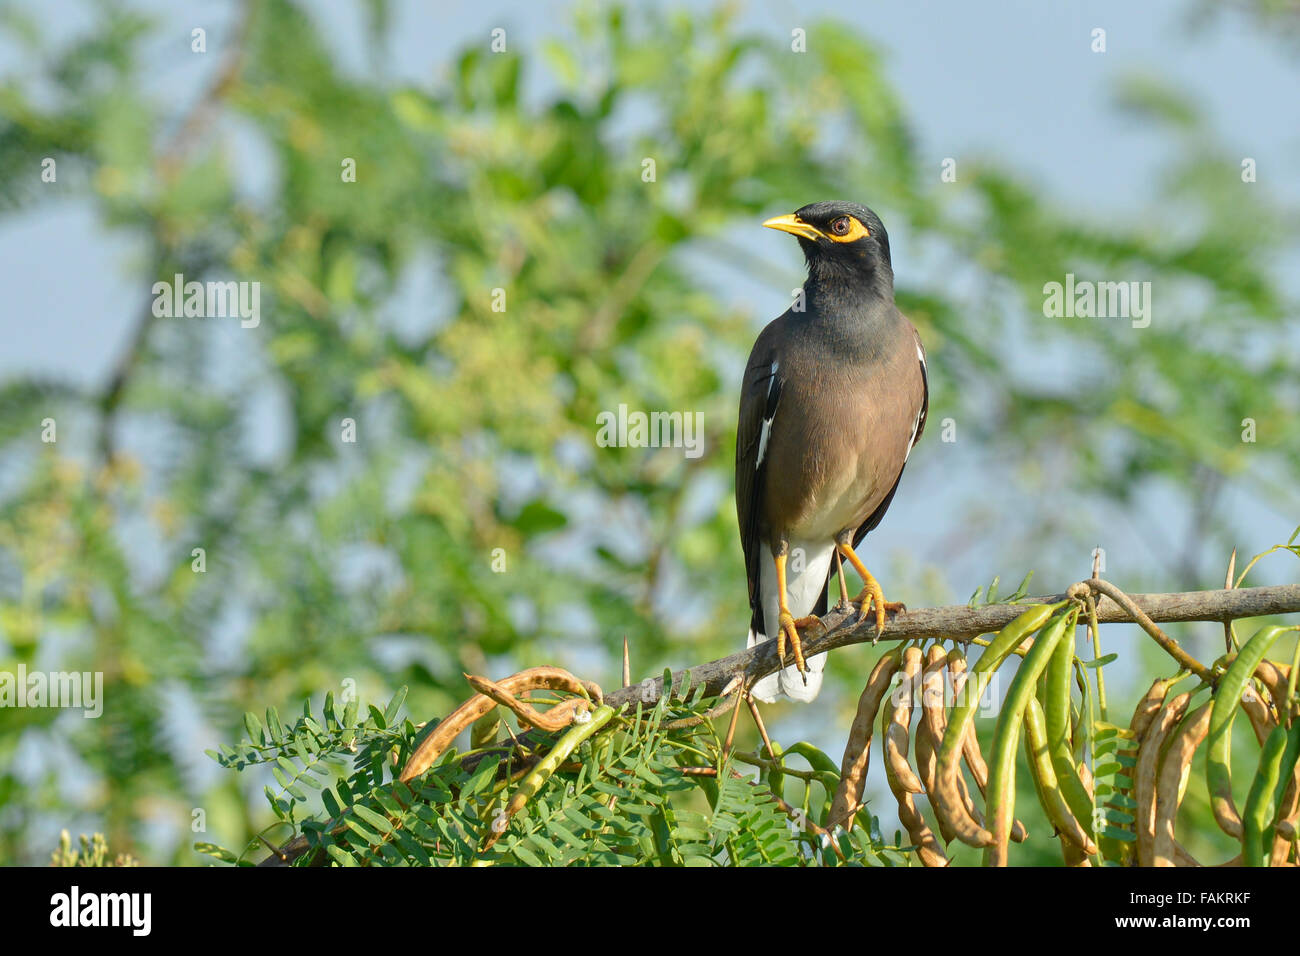 The common myna (Acridotheres tristis), sometimes spelled mynah. - Stock Image